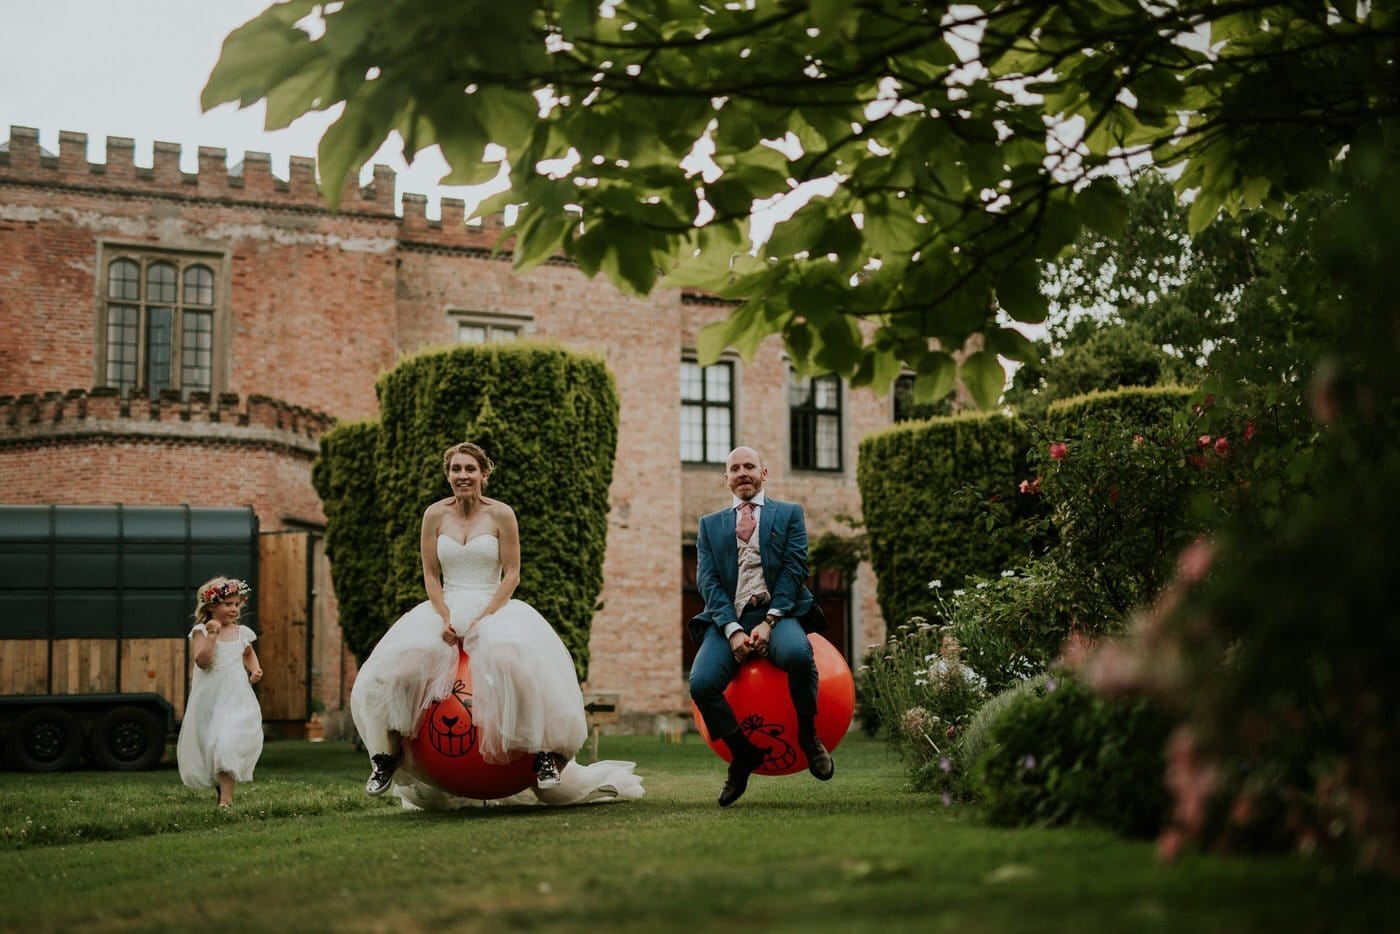 Wedding fun on a space hopper